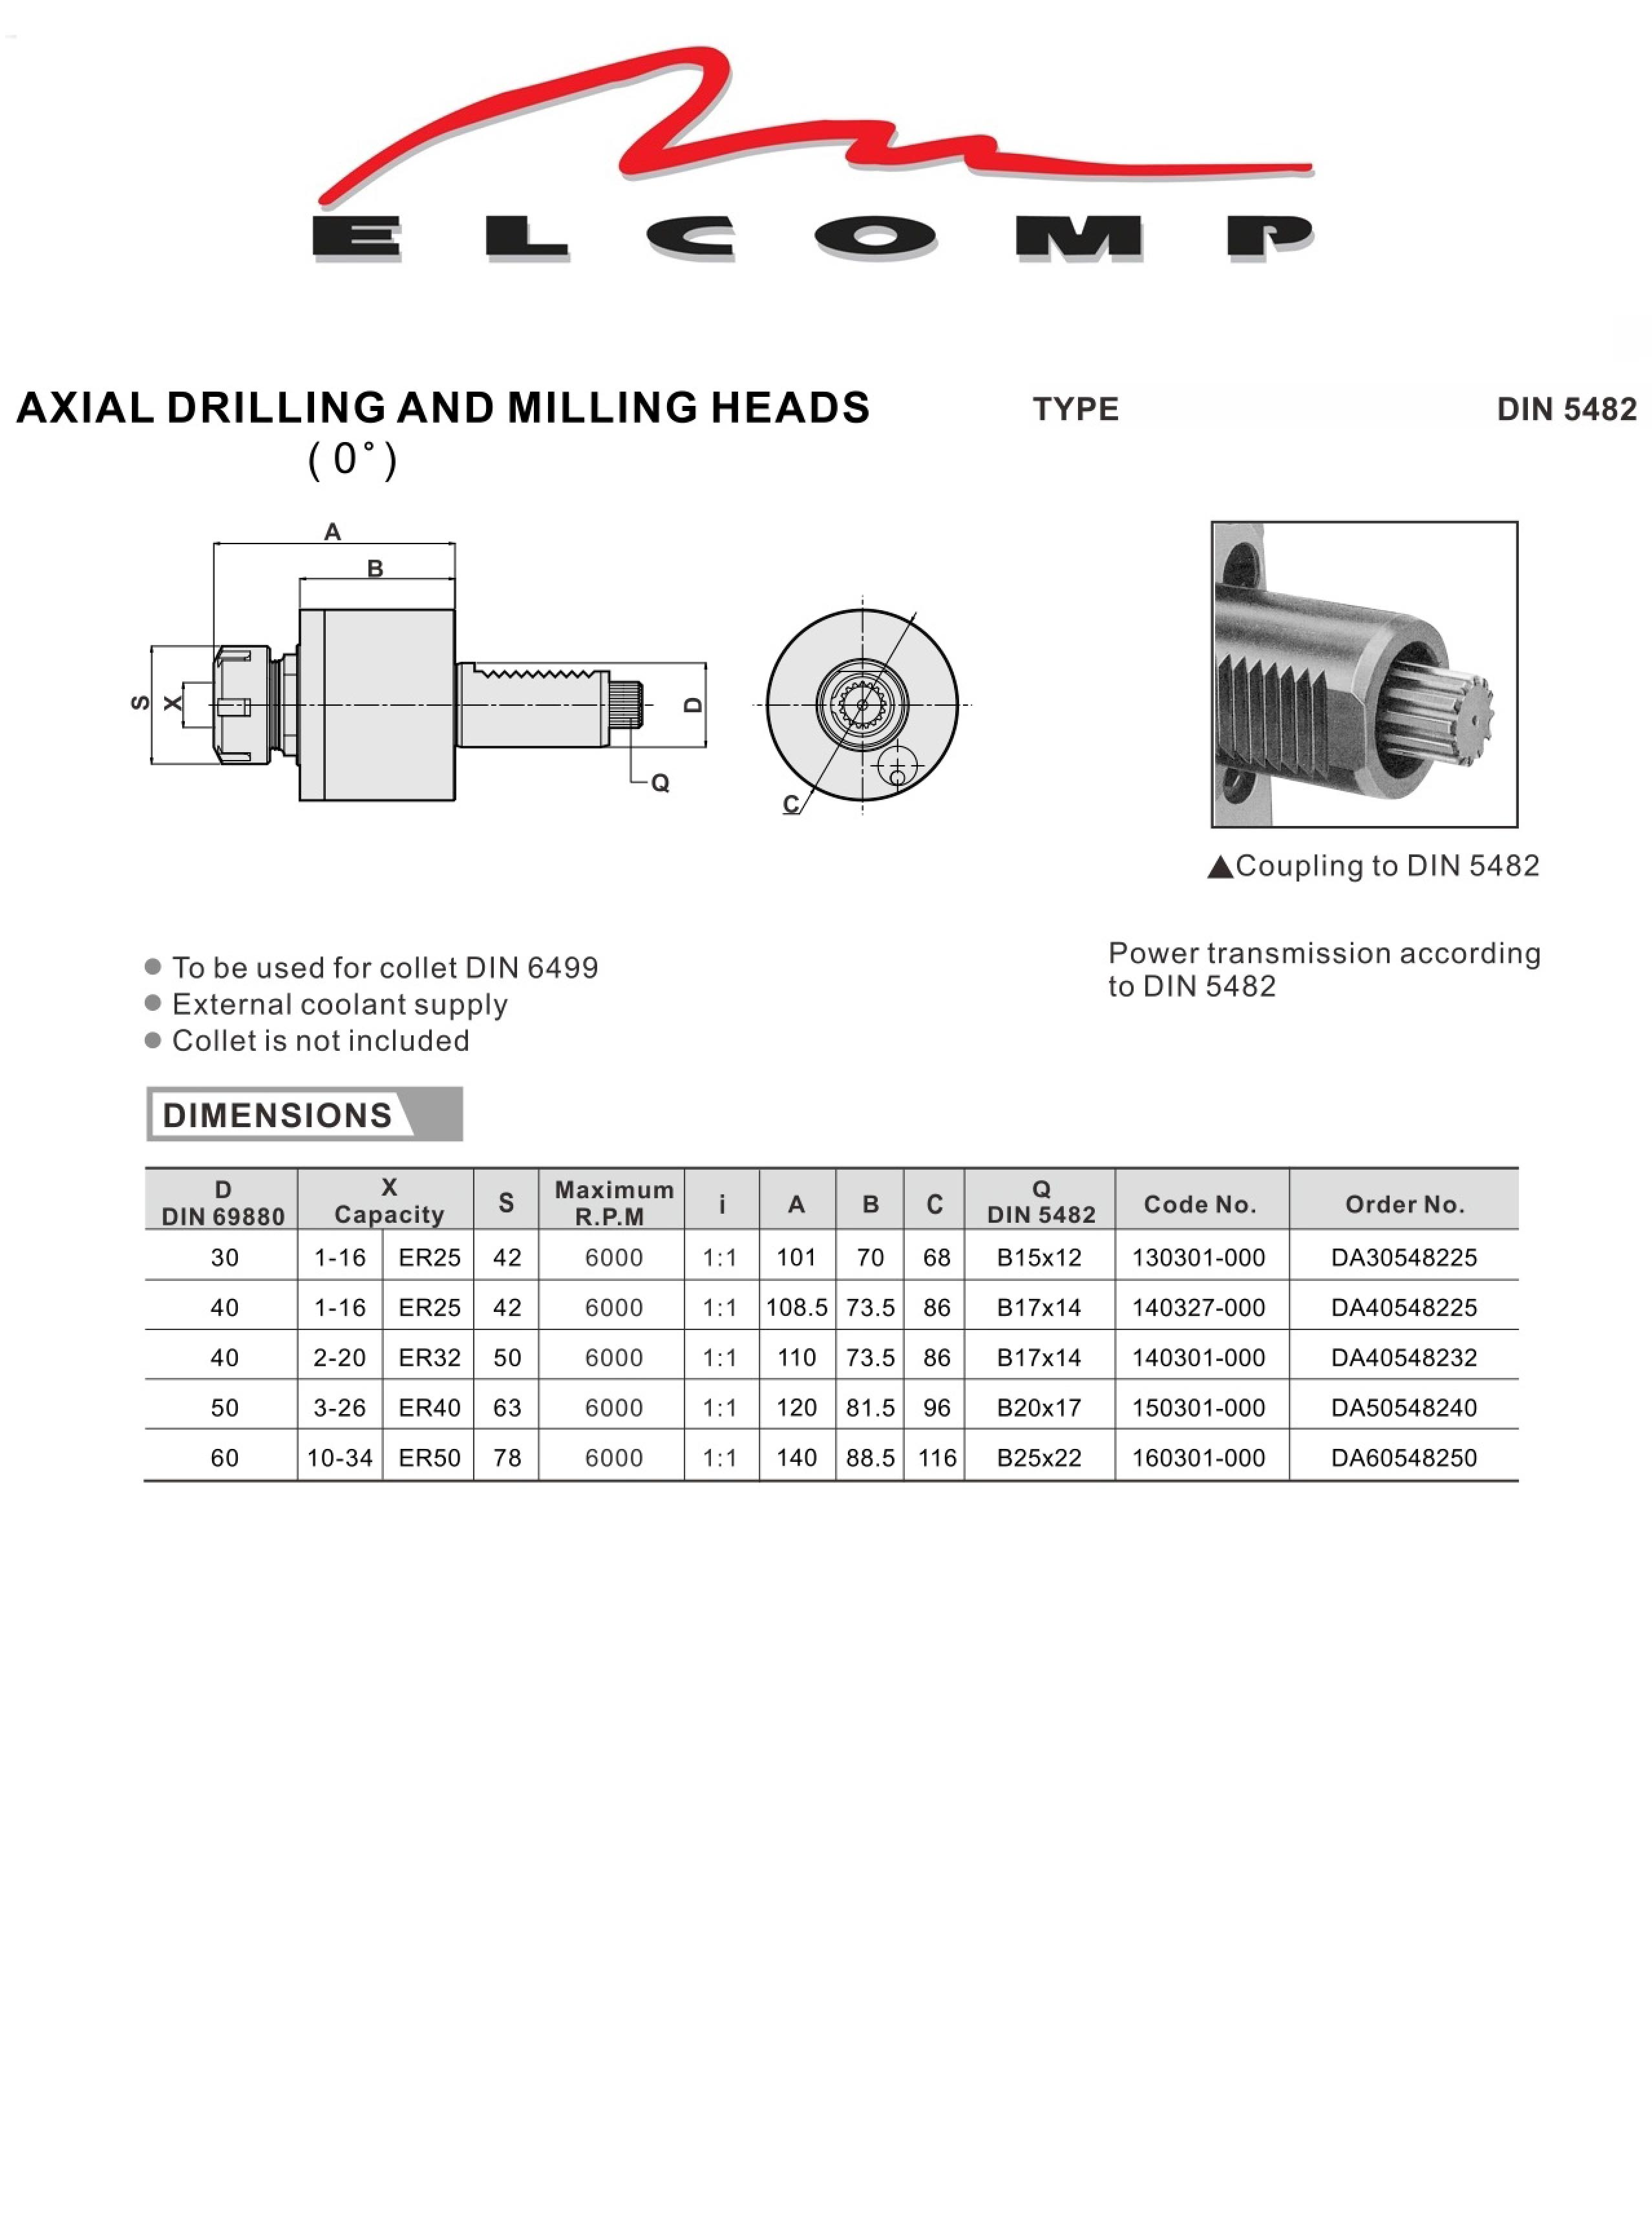 Drilling & Milling Heads